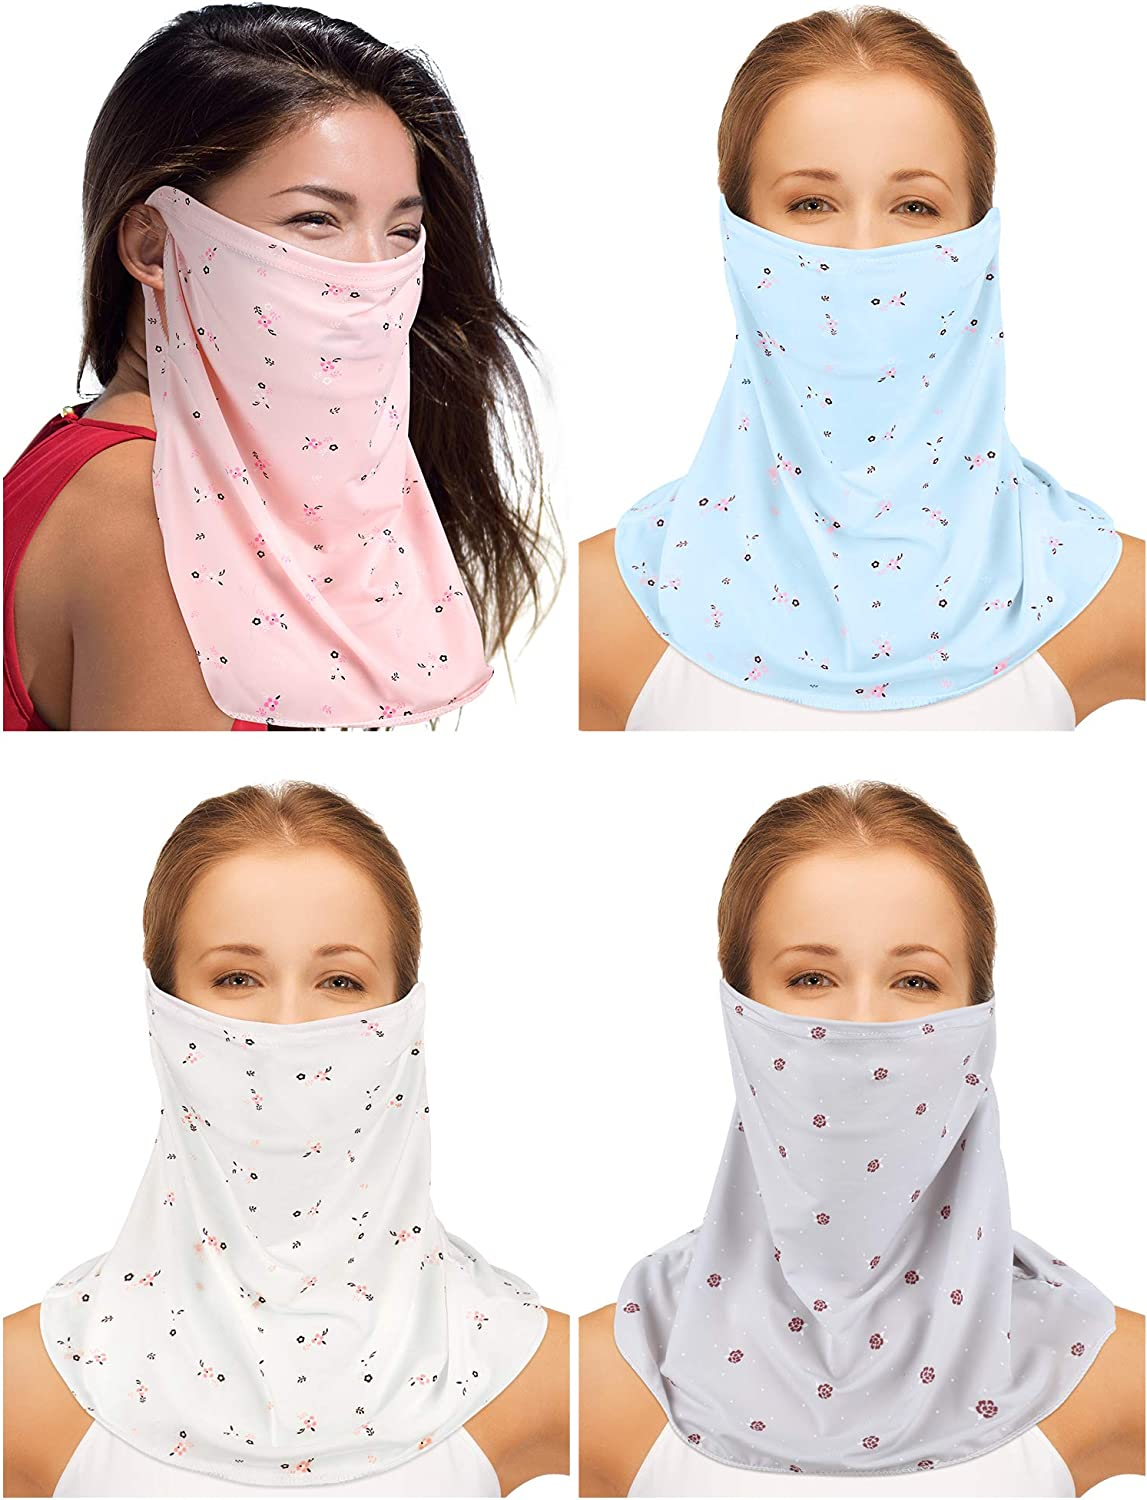 Sun Protection Face Cover Breathable Neck Gaiter Scarf UV Protection Bandana (White, Pink, Light Blue and Gray, 4)